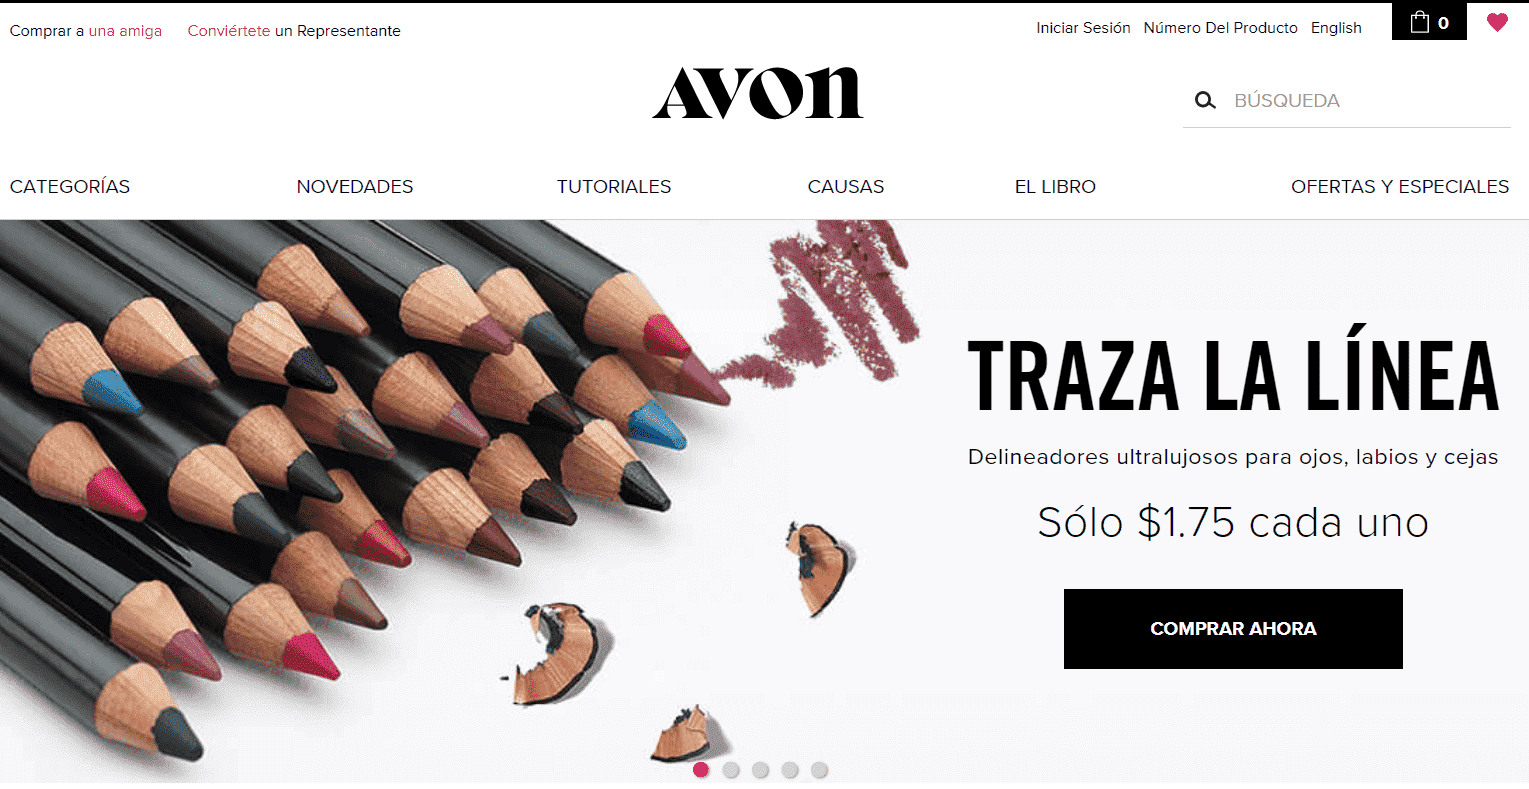 Spanish version of Avon website